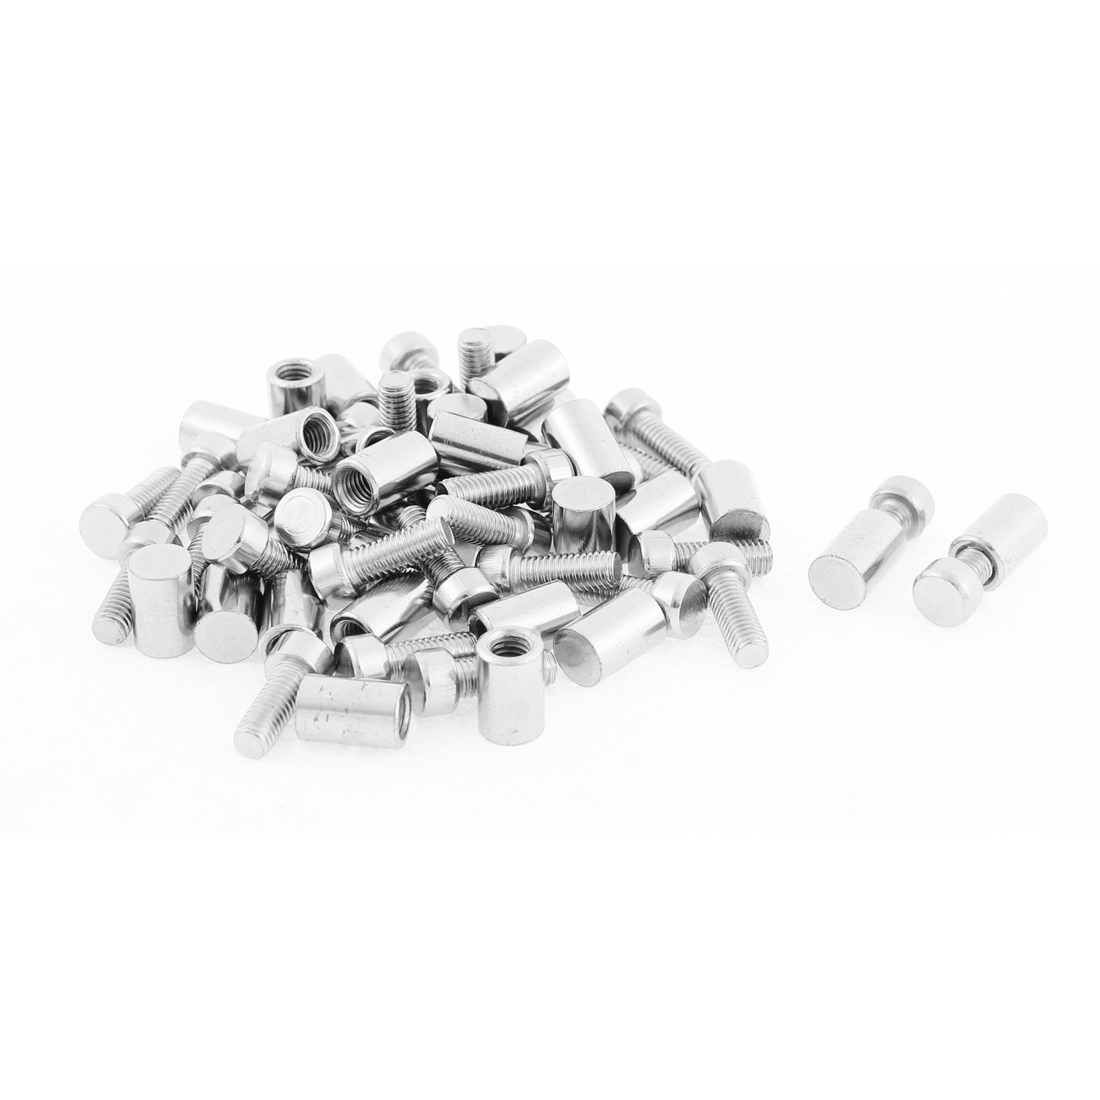 Advertising Wall Fixing Screw Nails Glass Standoff Silver Tone 8x20mm 30pcs